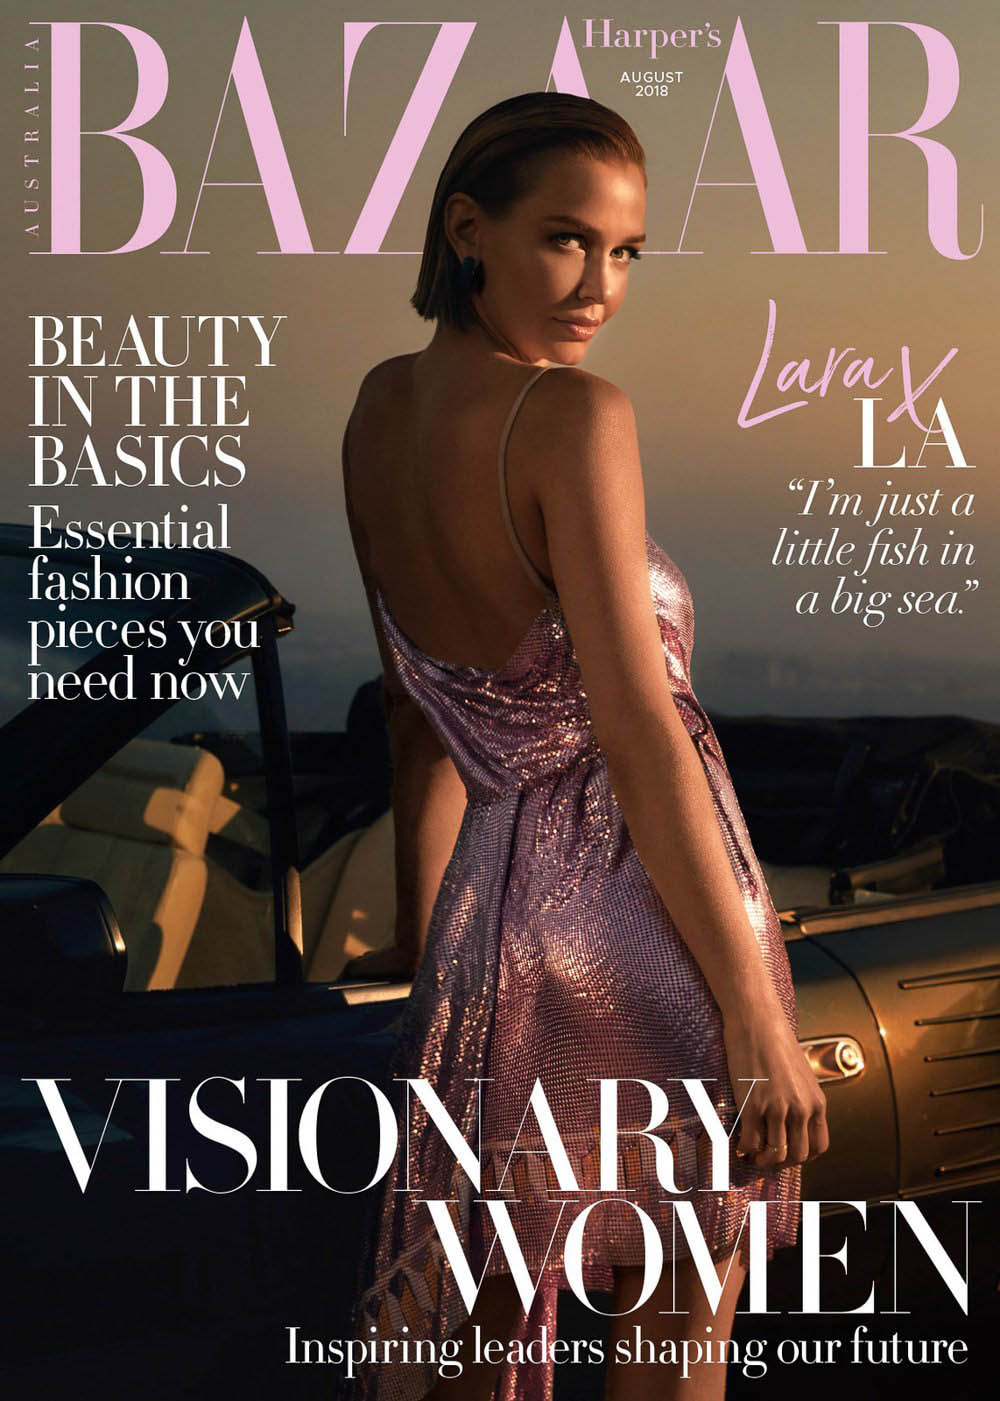 Lara Worthington covers Harper's Bazaar Australia August 2018 by Darren McDonald